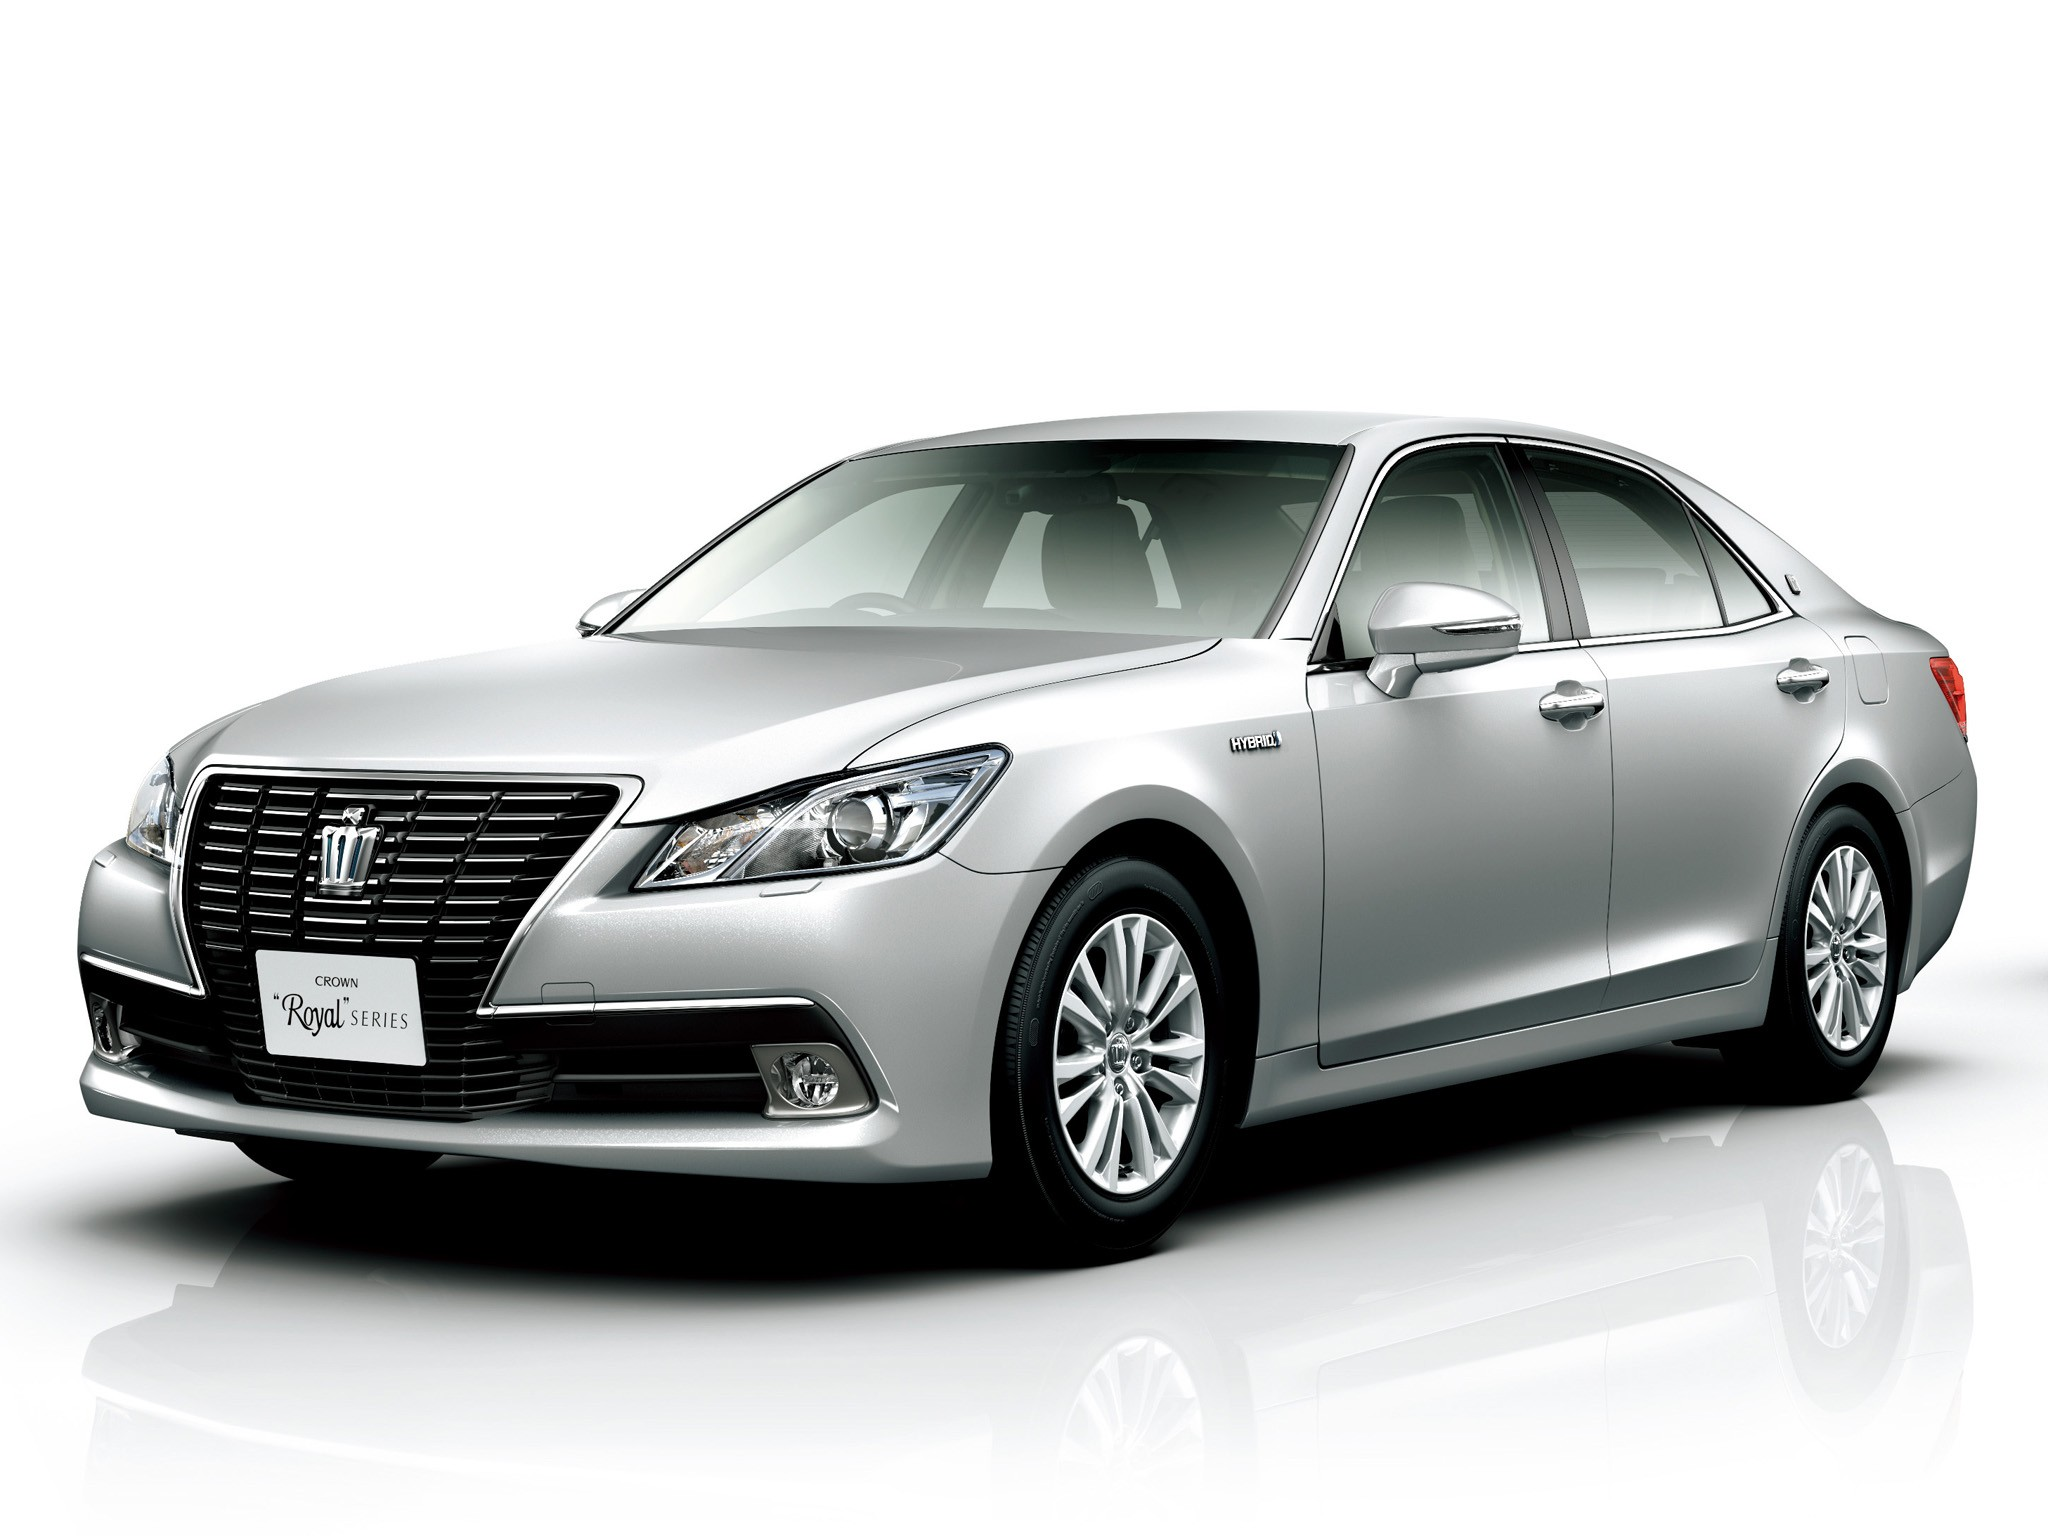 2013 Toyota Crown Royal Saloon S210